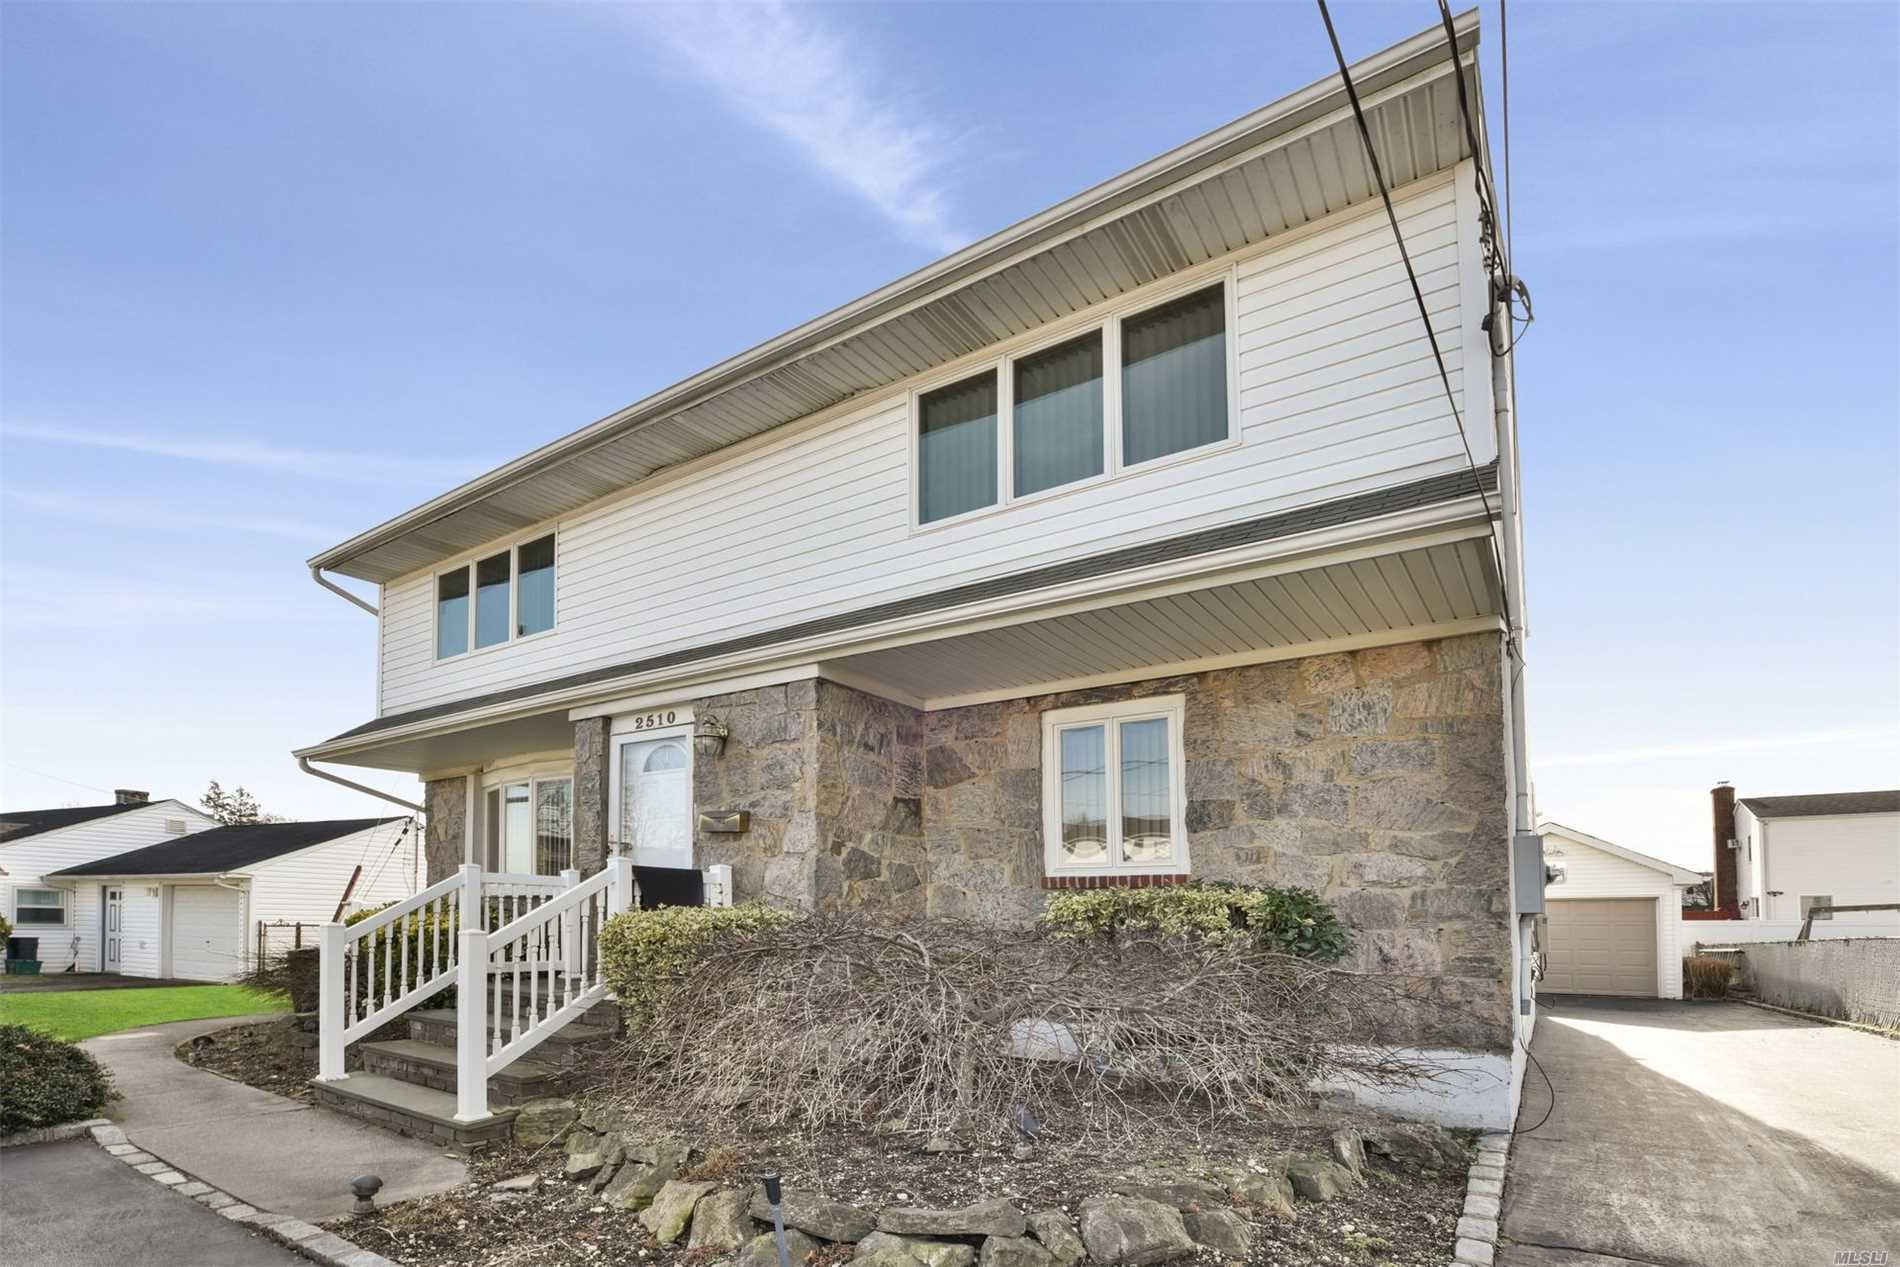 2510 2nd Ave - East Meadow, New York